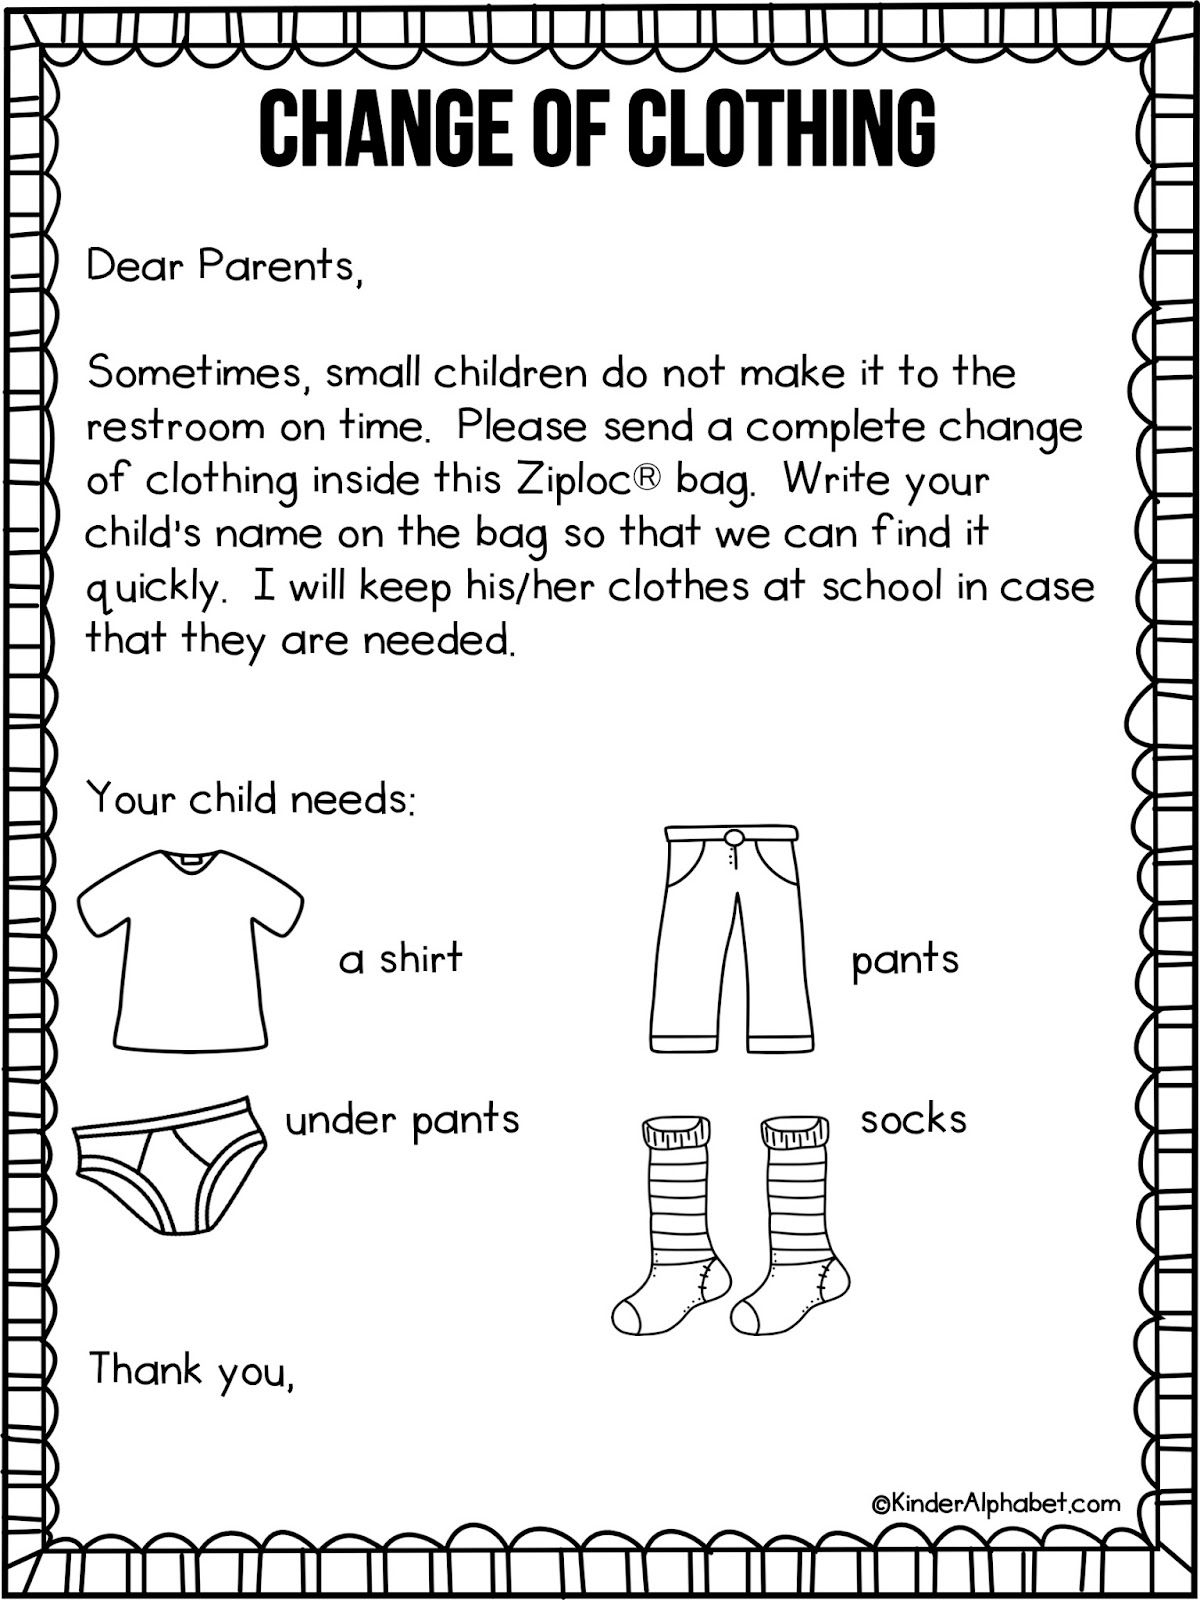 preschool welcome letter to parents from teacher template example-Parent Letter for Change of Clothing free from KinderAlphabet via Freebielicious Probably want to edit it a bit to fit our classroom 2-g